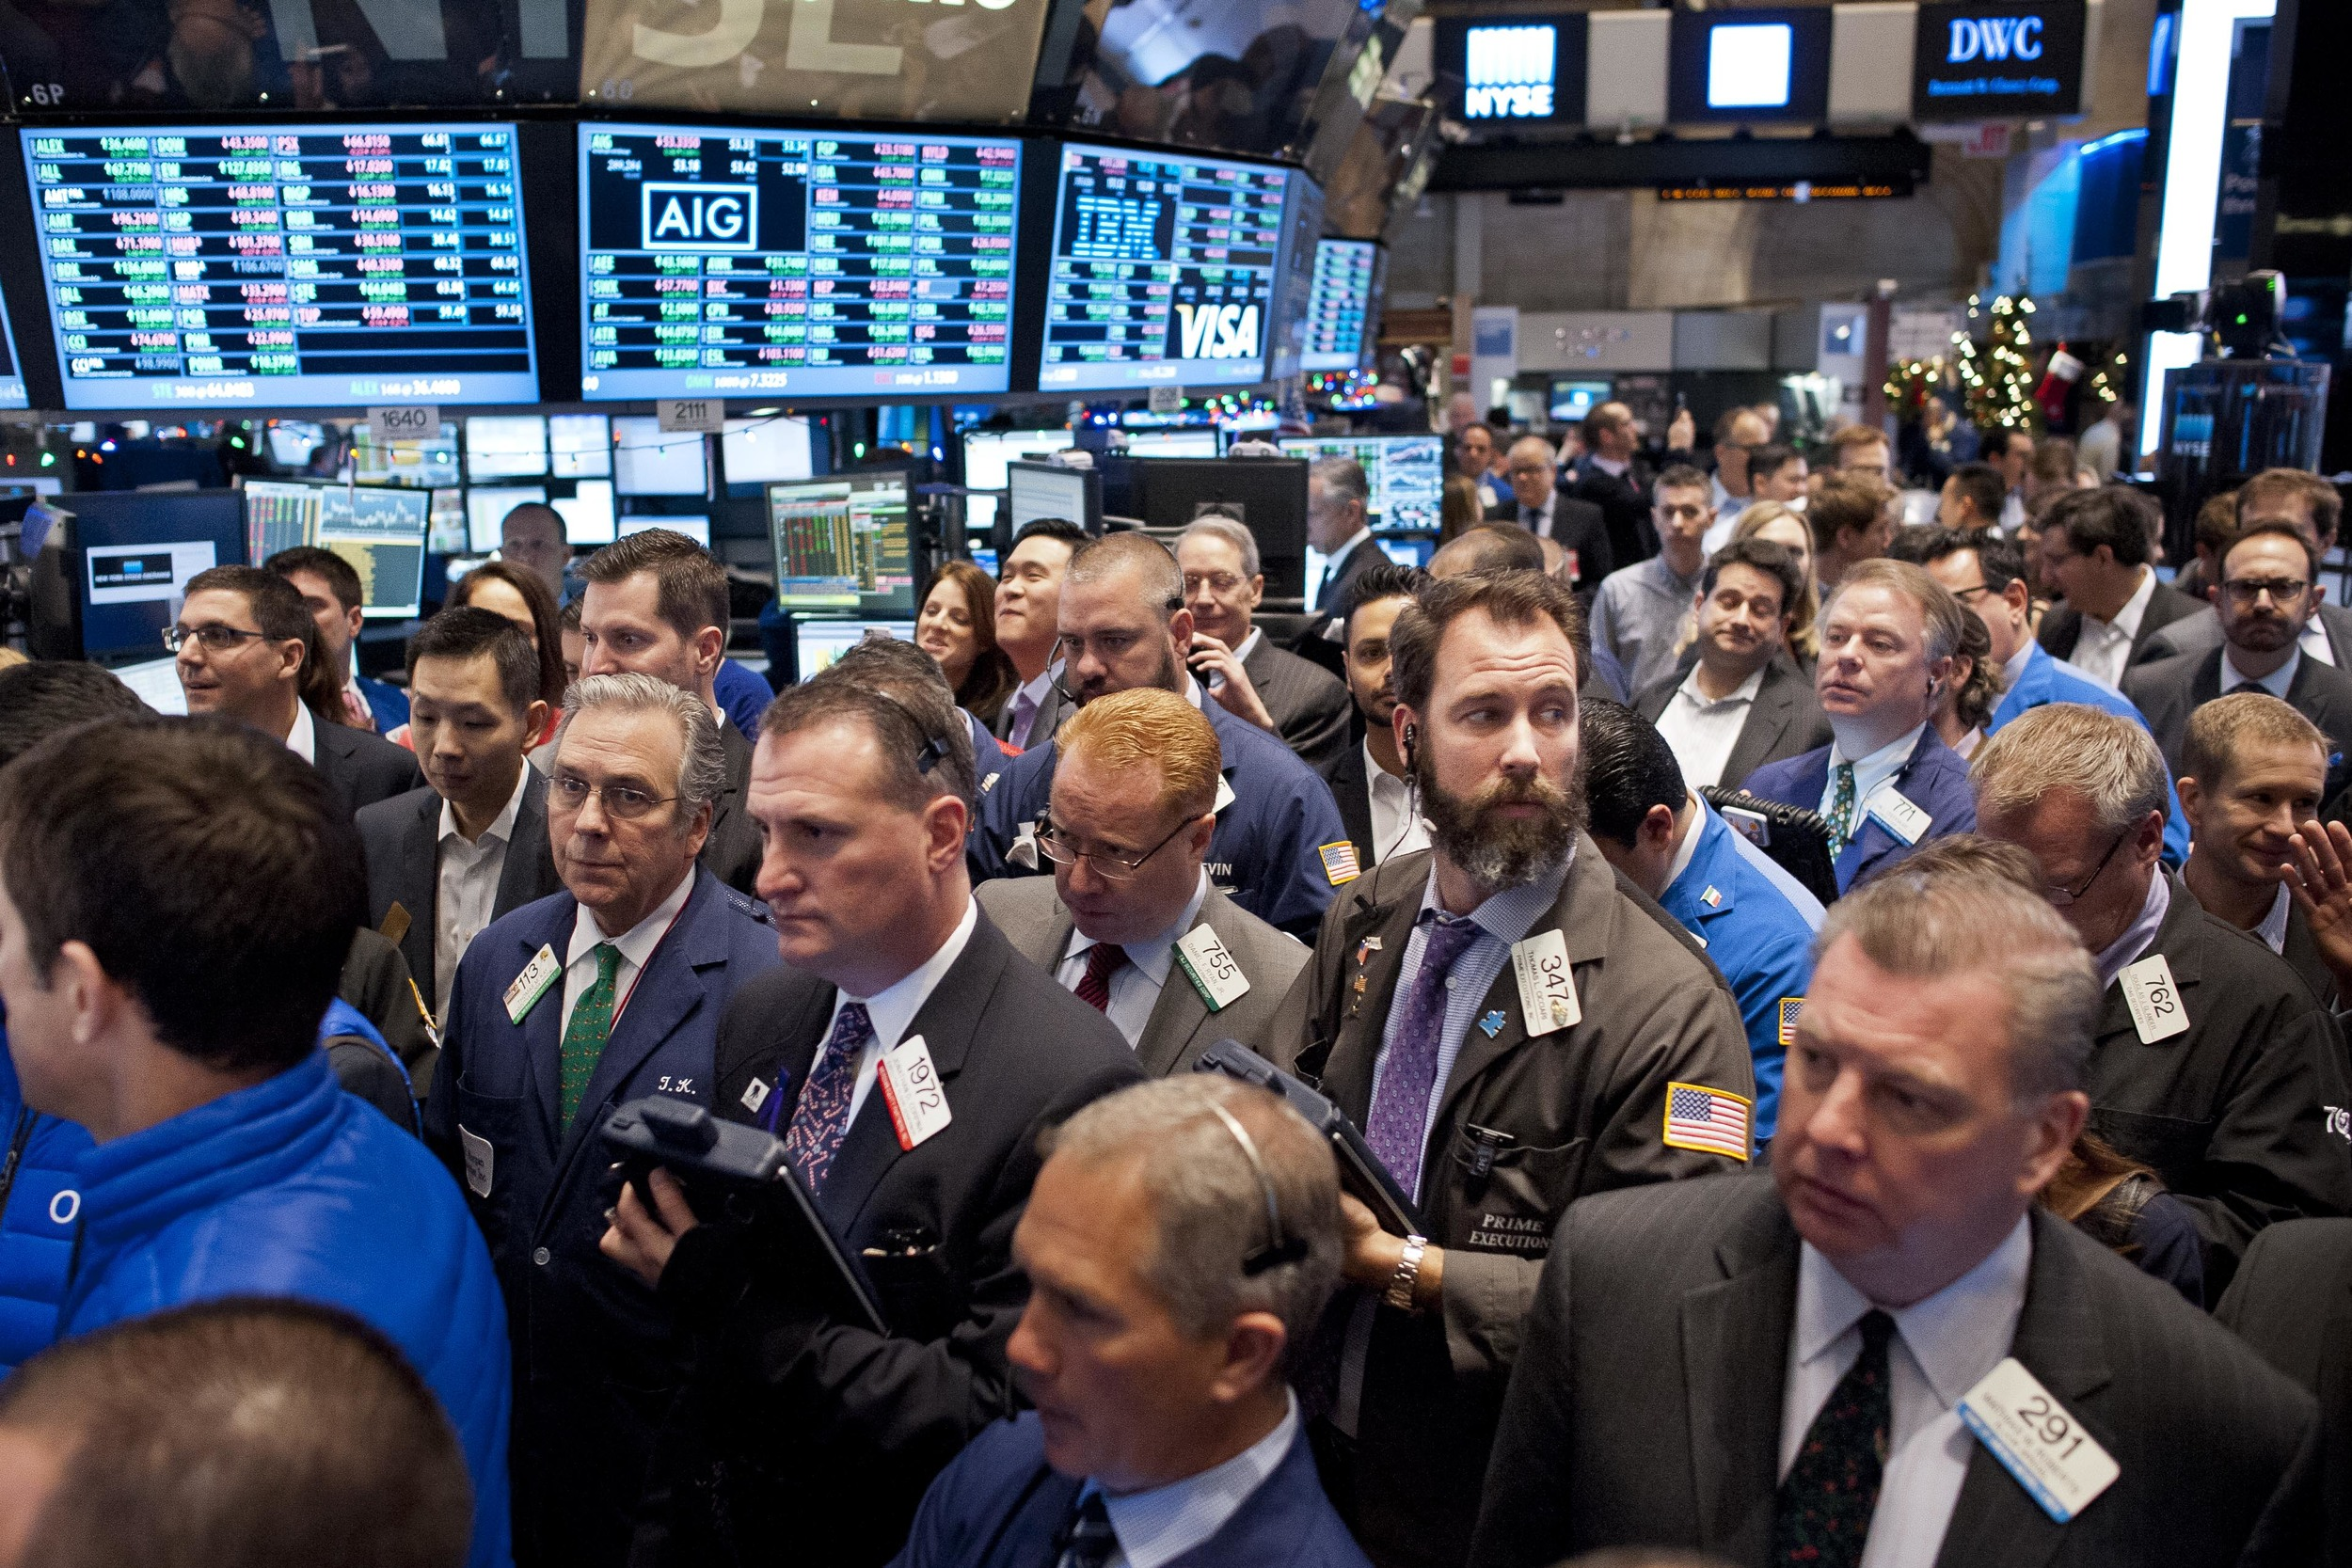 The NYSE floor slowly floods as OnDeck begins its initial public offering on December 17, 2014.